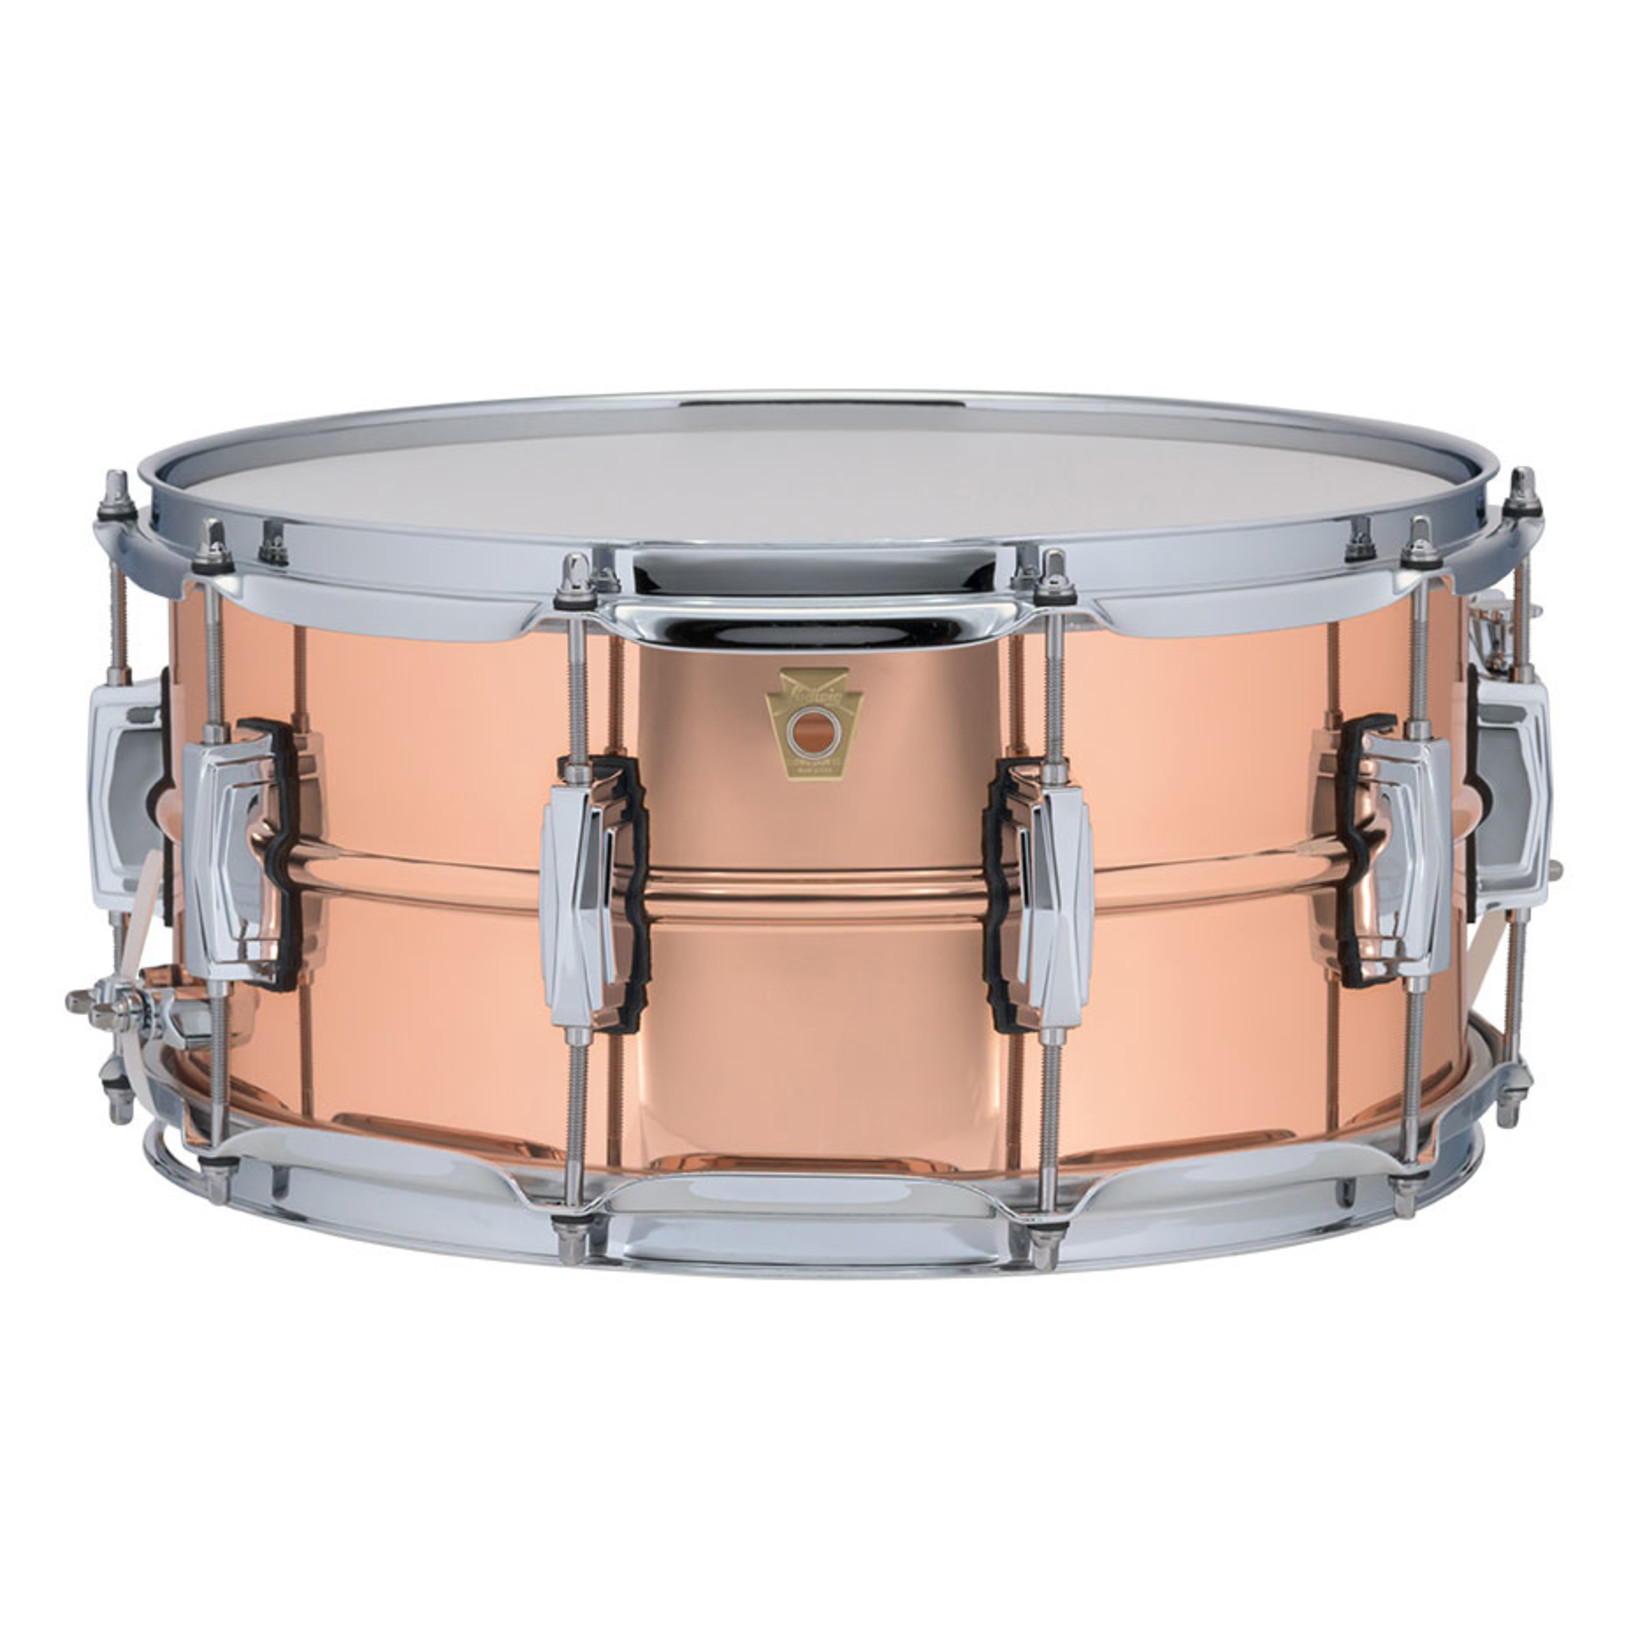 Ludwig Ludwig 6.5X14 Copper Phonic Snare Drum / Imperial Lugs / Smooth Shell